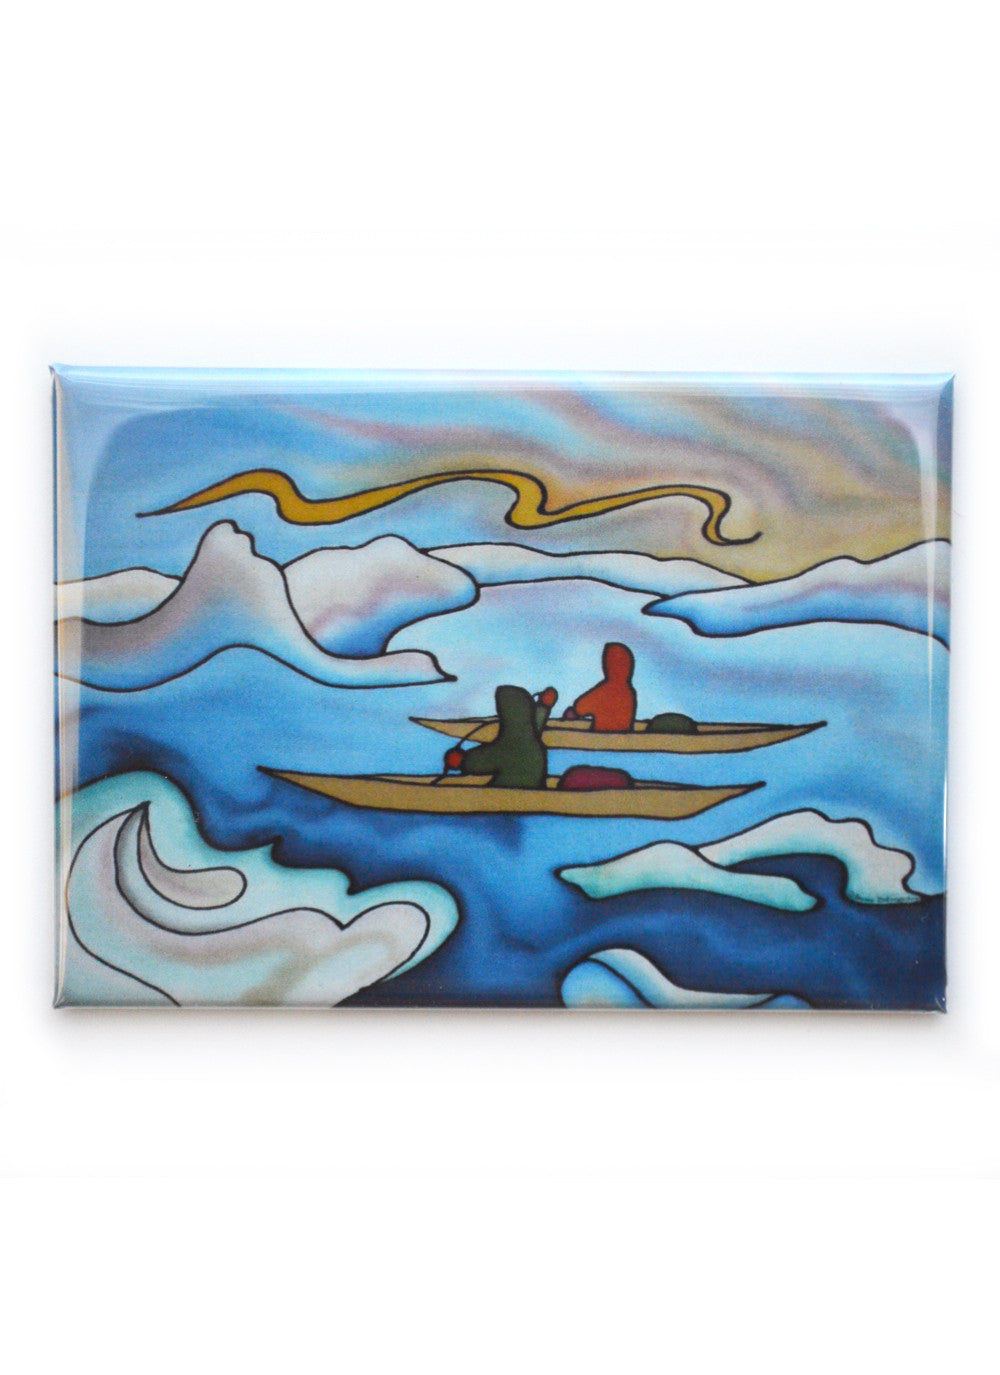 "Kayakers Magnet | 3.5""x2.5"""